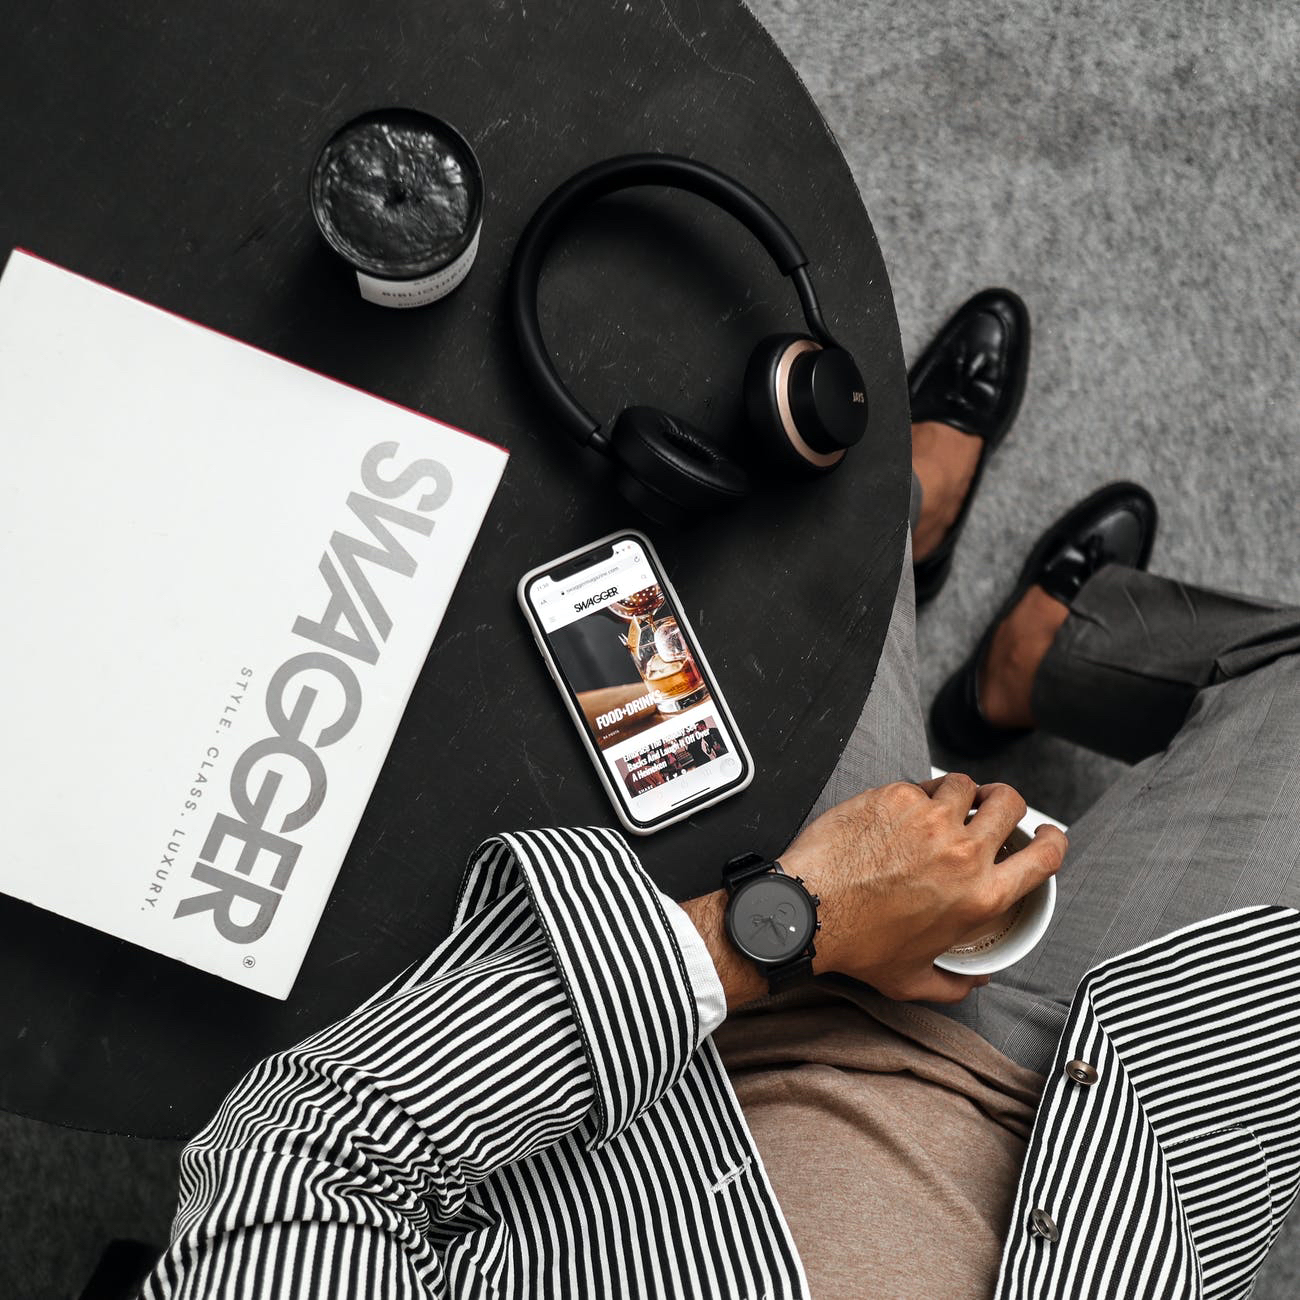 A man in a striped black and white jacket looks at his wrist watch while resting on a table with a coffee, a pair of headphones and an iphone.